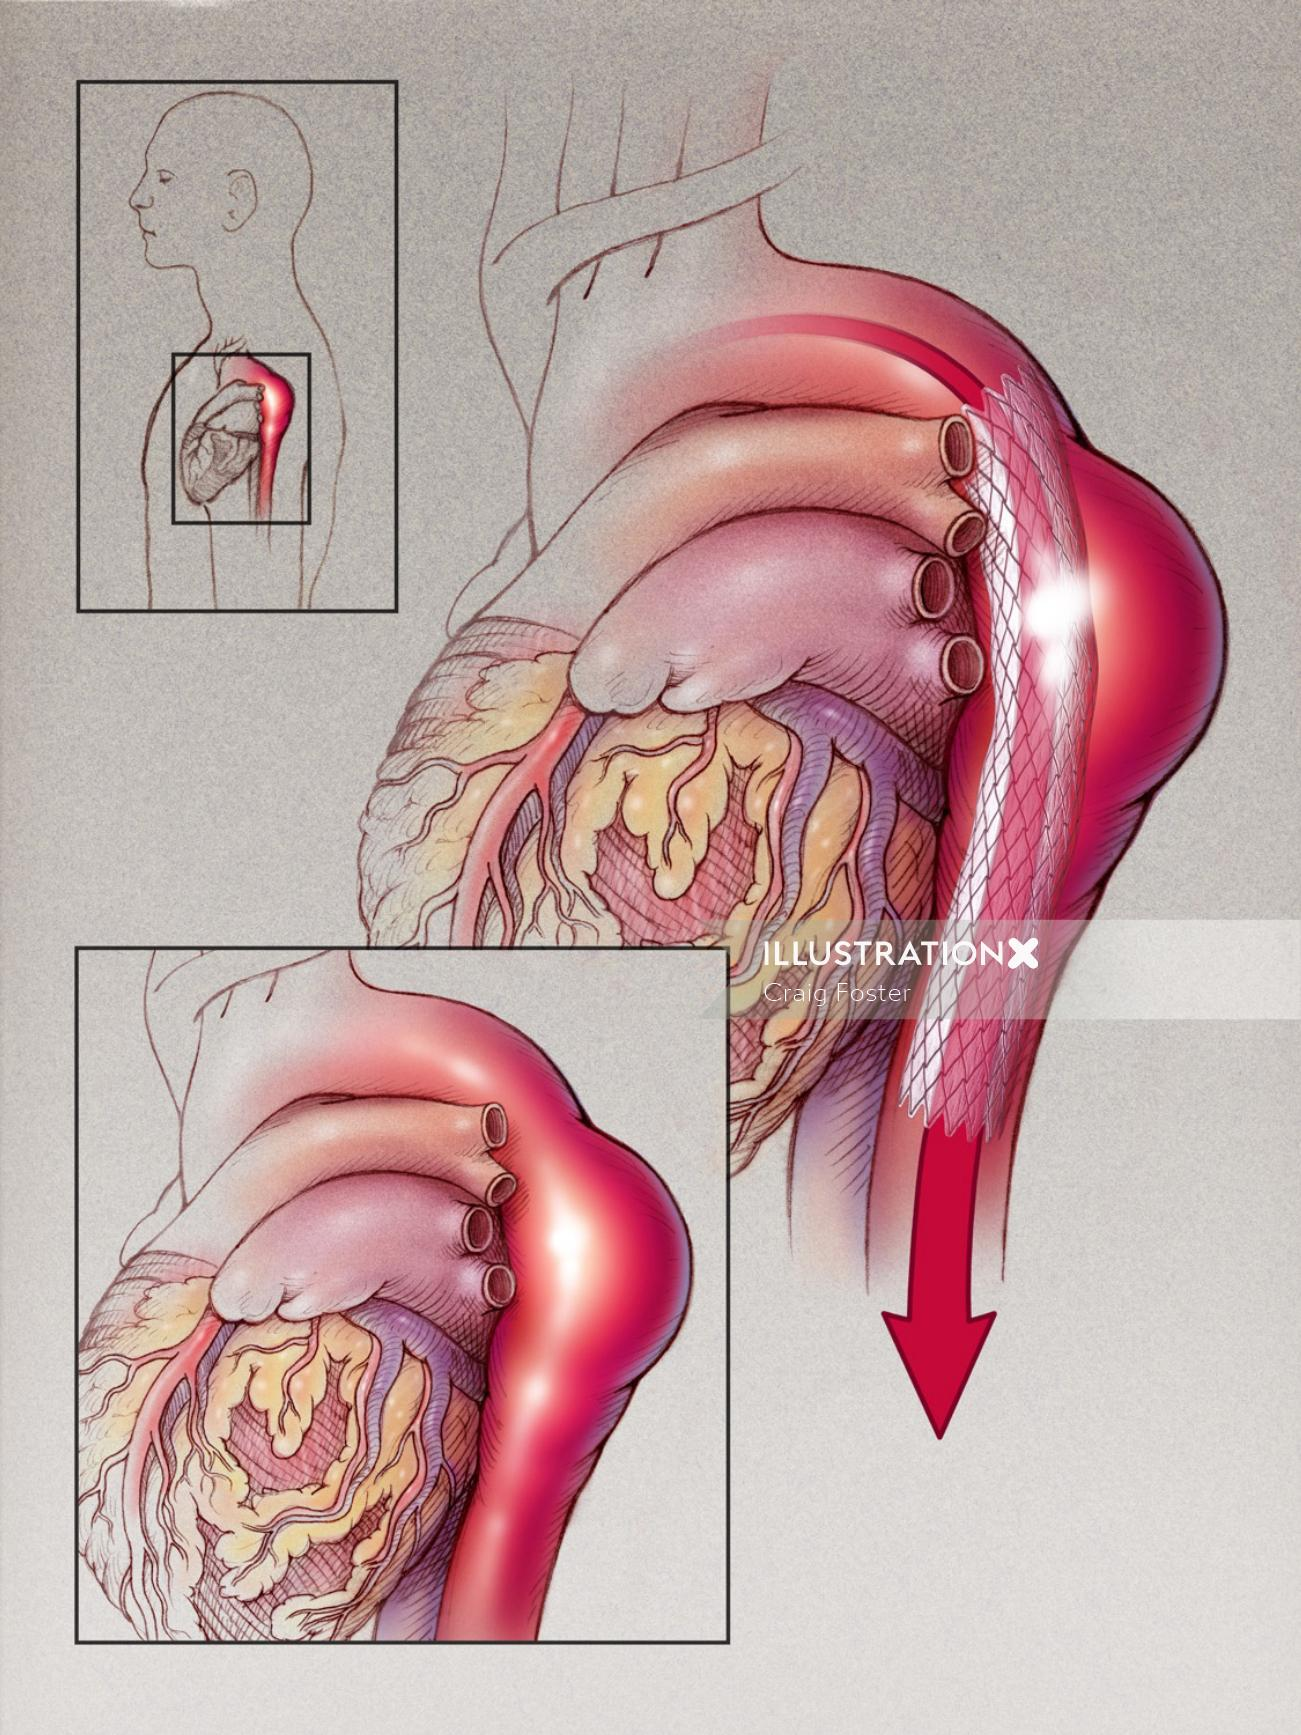 An illustration of thoracic aneurysm graft